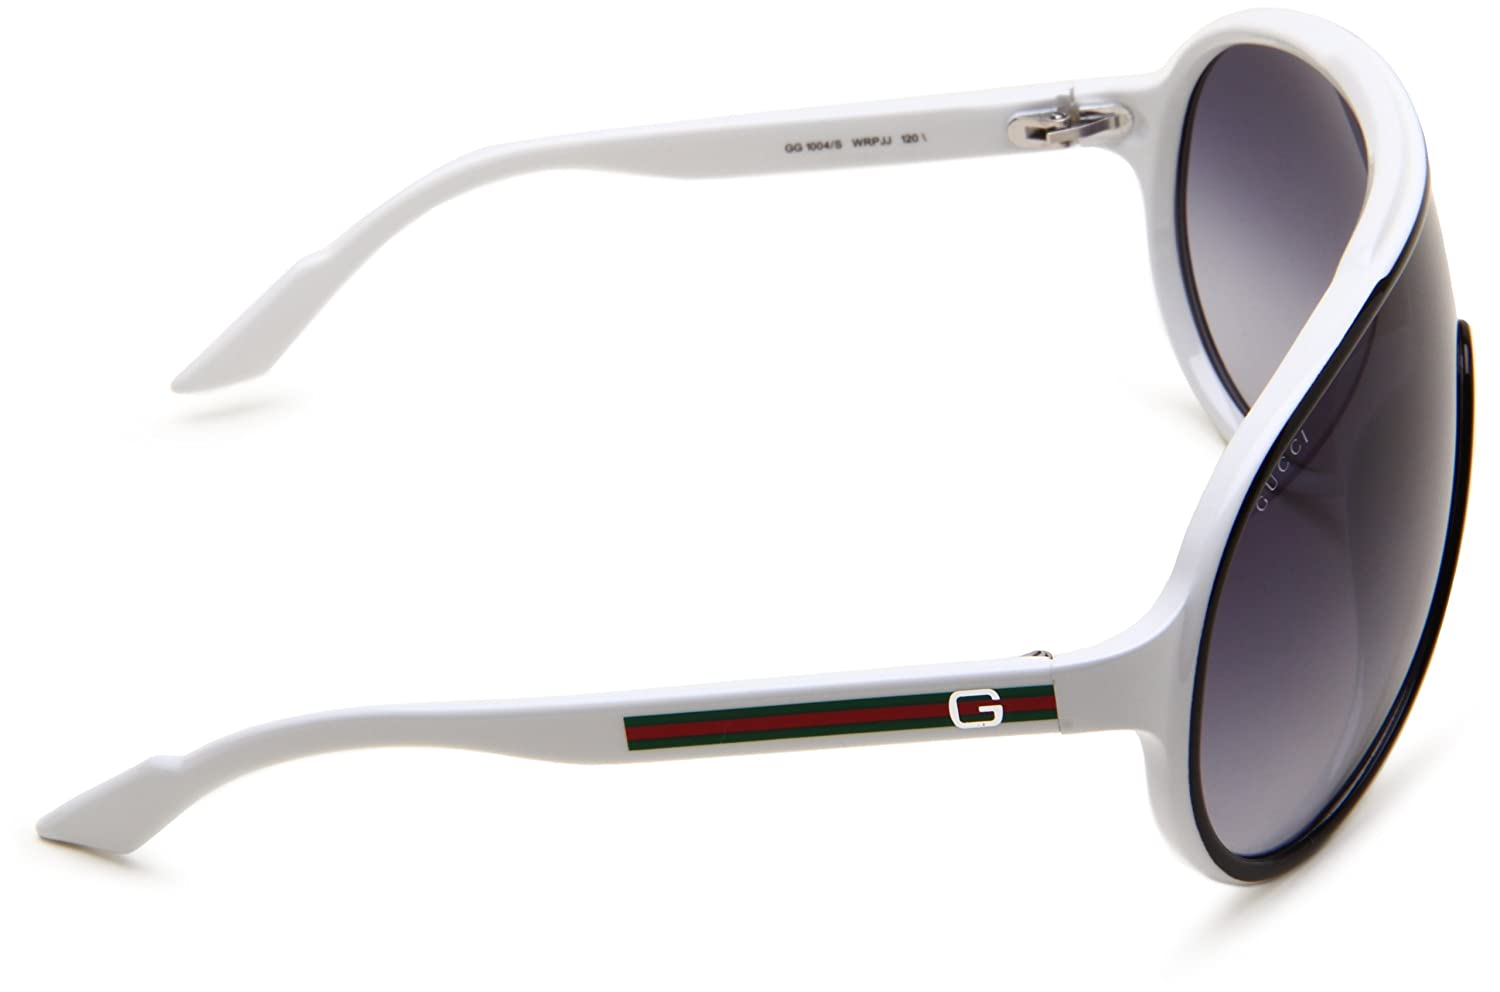 8705e41d1 Gucci Men's 1004/S Shield Sunglasses, Black/White: Gucci: Amazon.in:  Clothing & Accessories